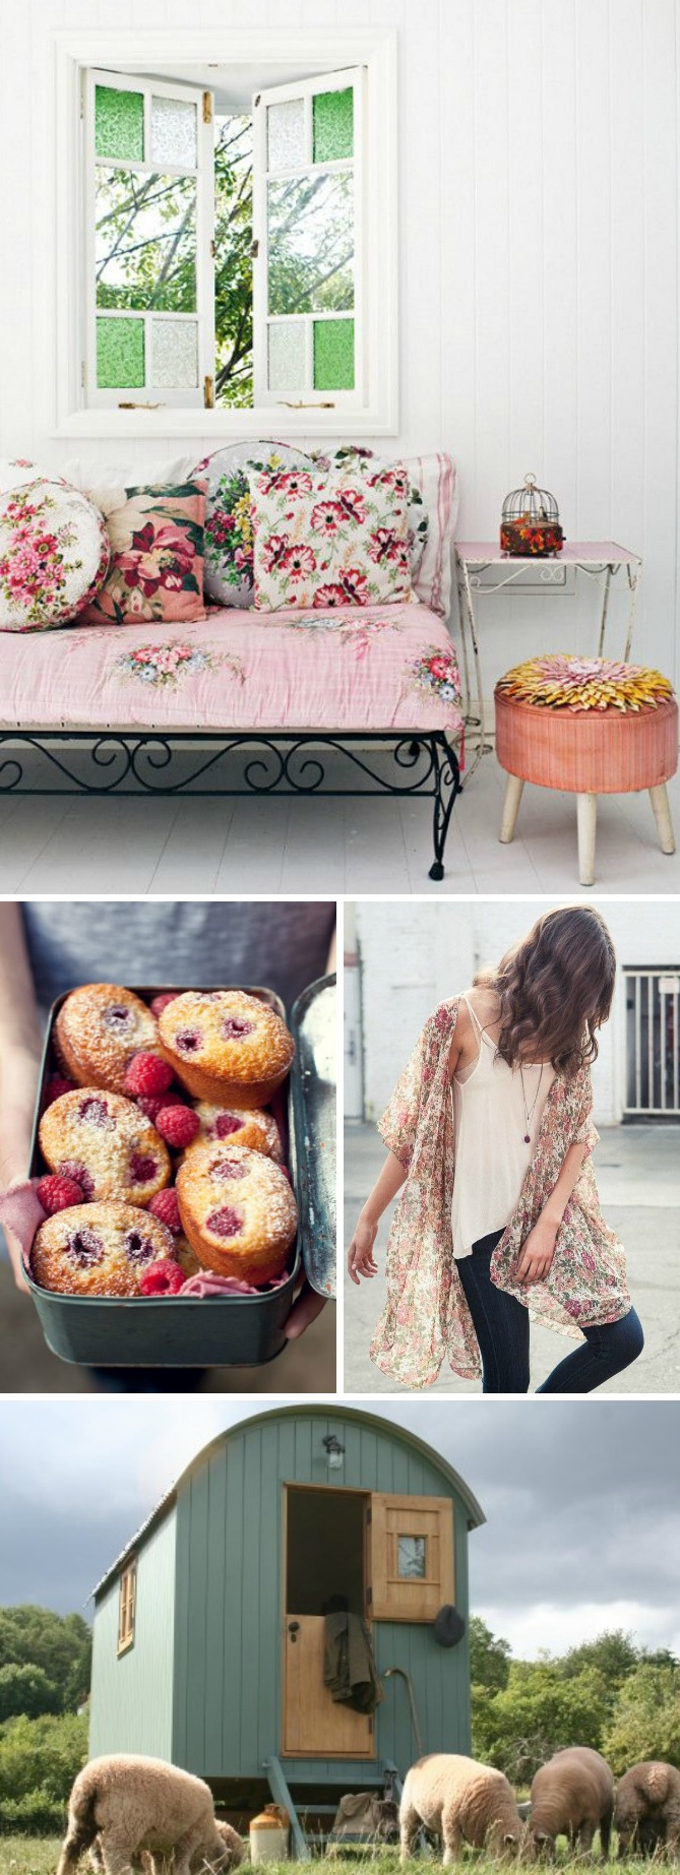 Mood of the Moment - spring escape - Decorator's Notebook blog 680